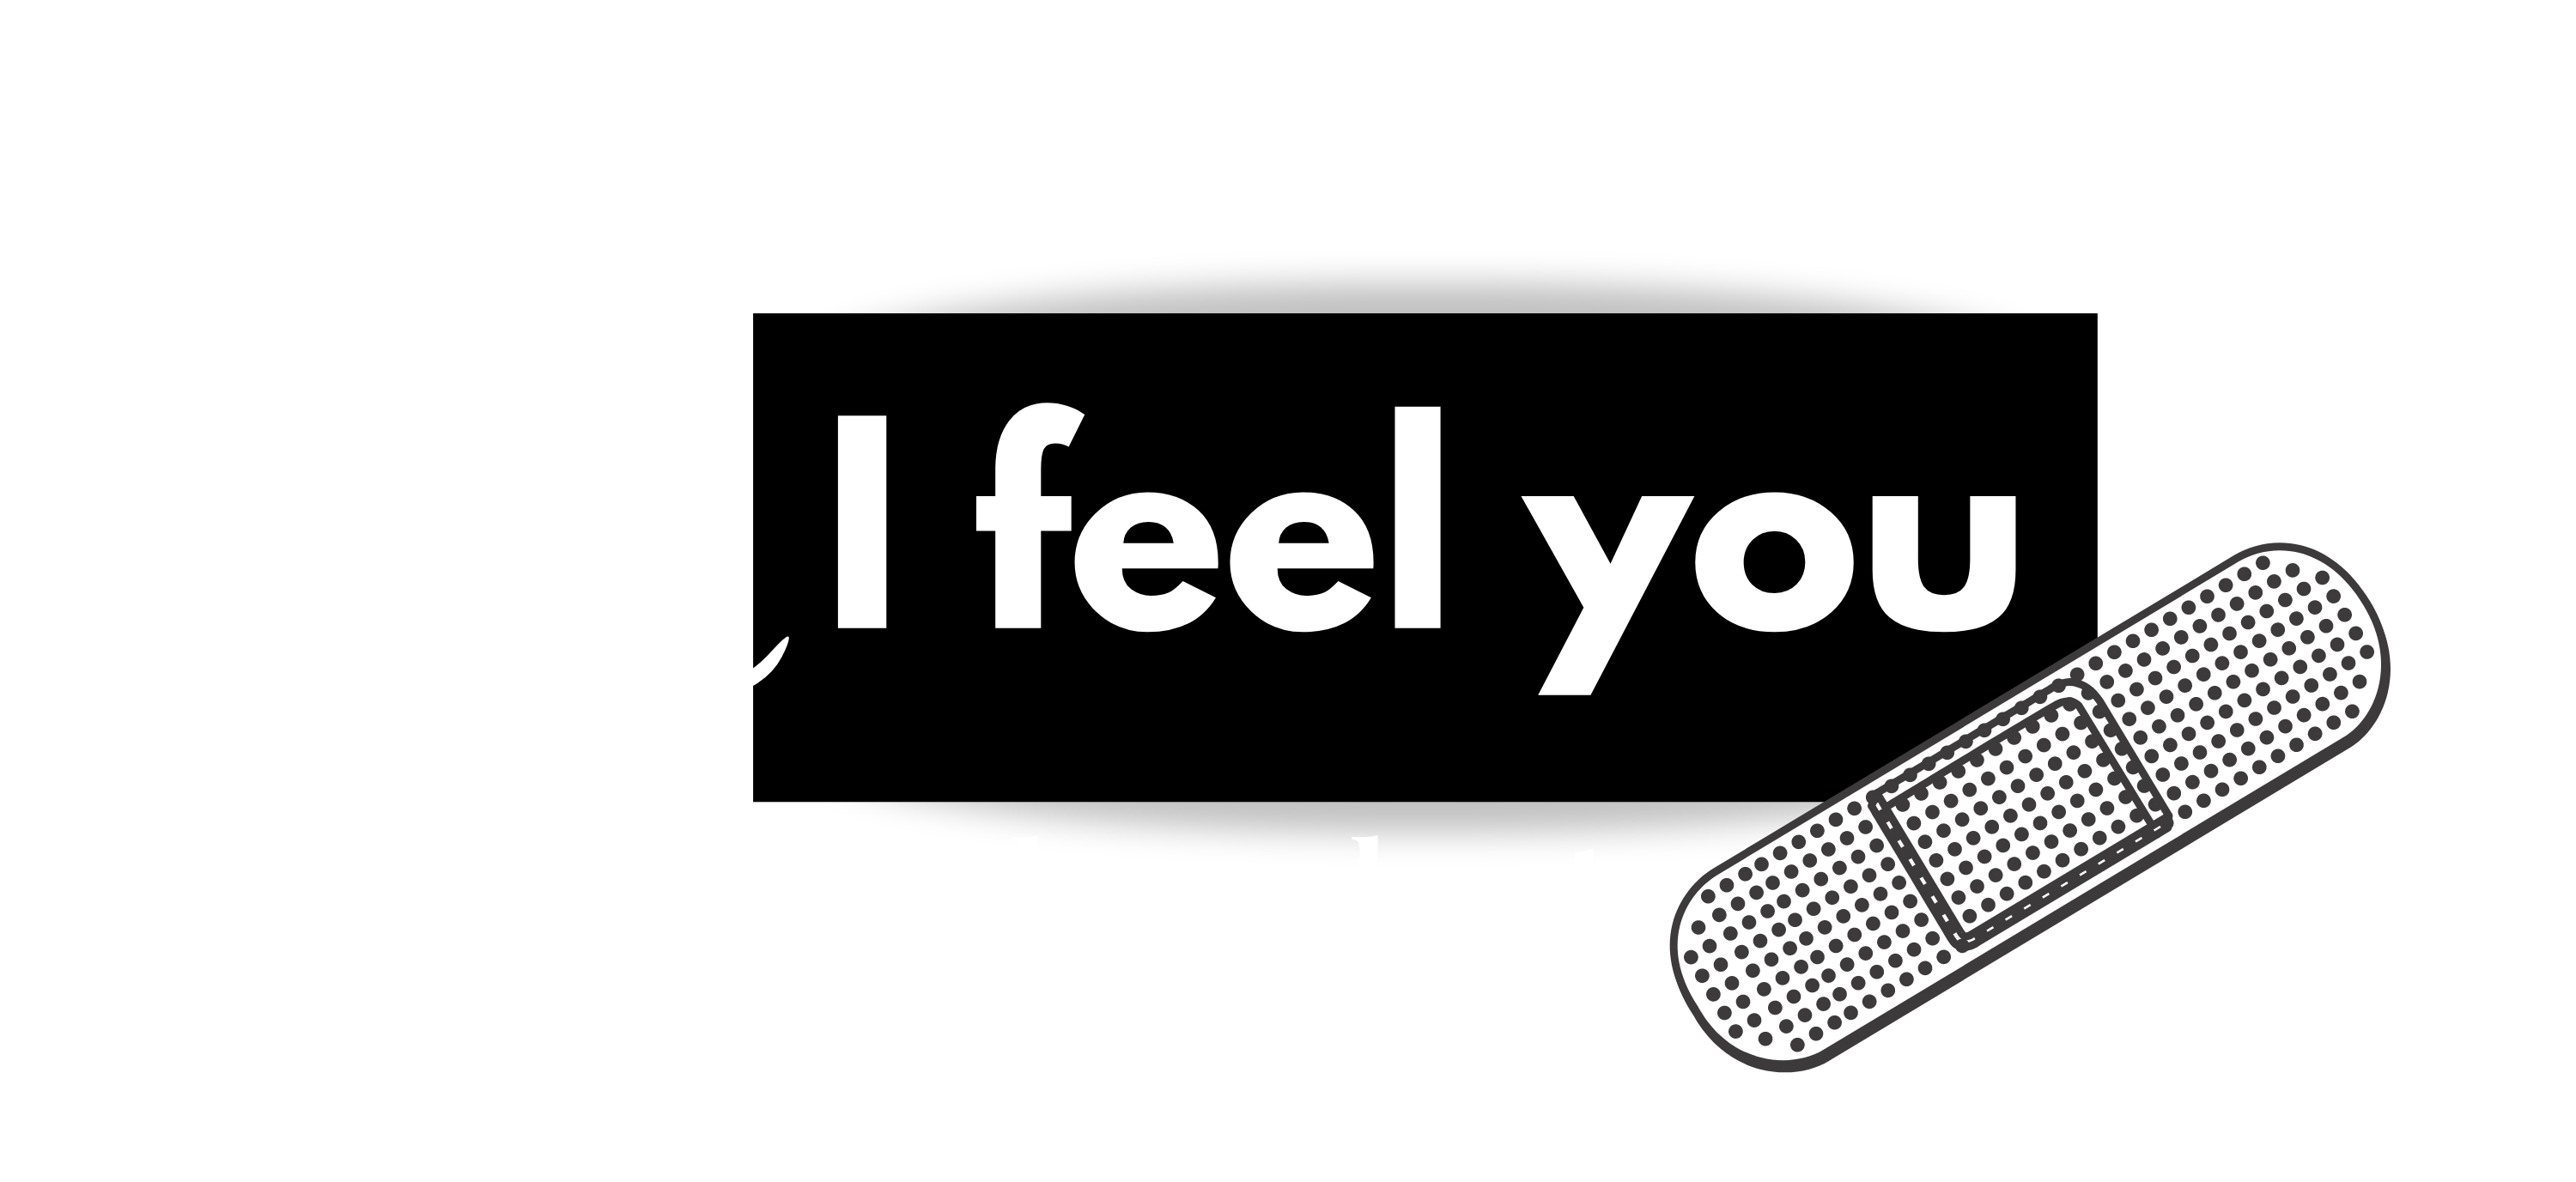 To Be Honest I Feel You, the podcast